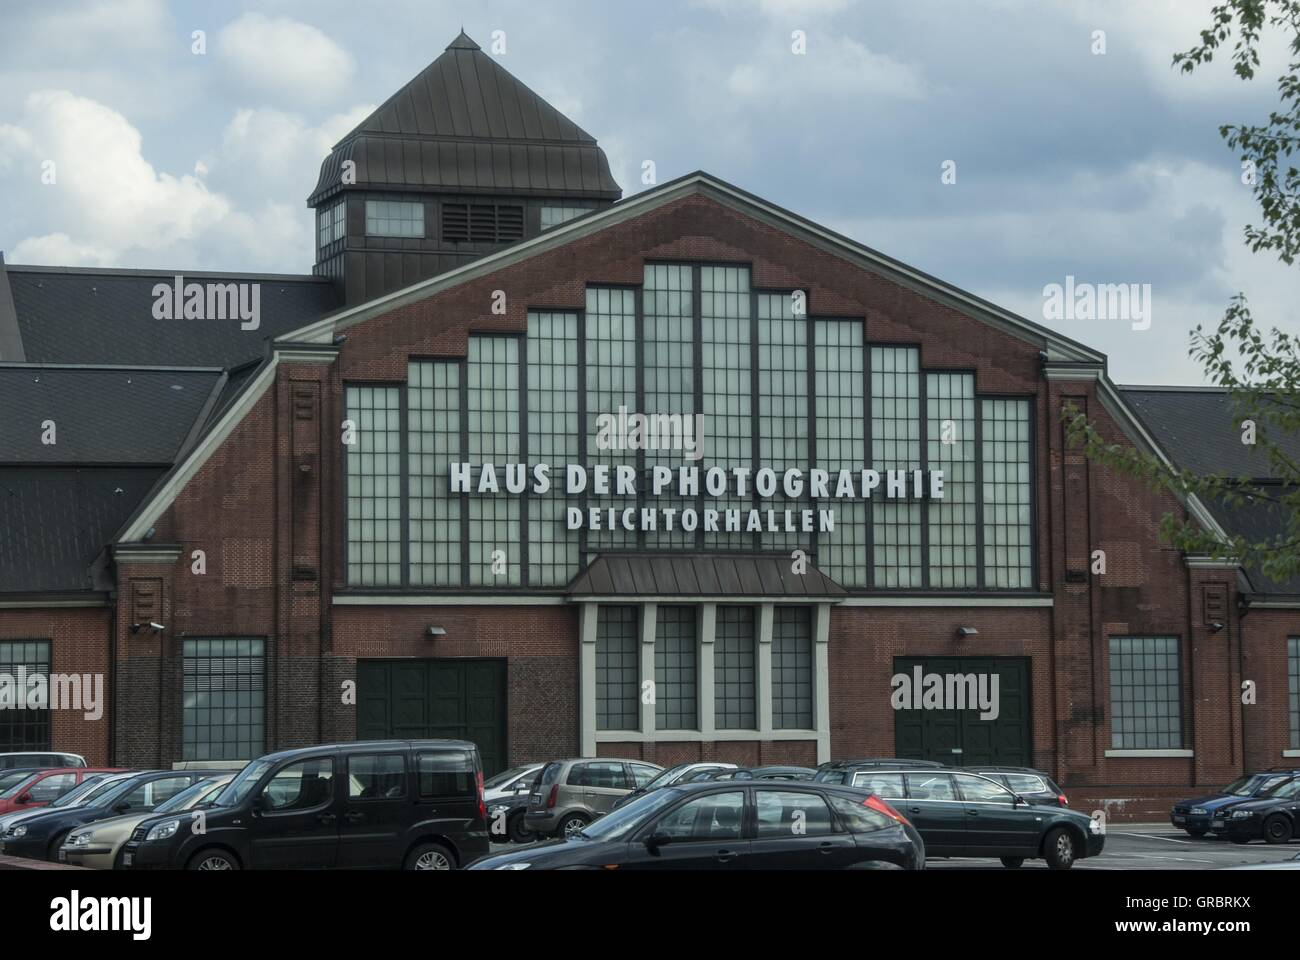 Deichtorhallen, Buildings, Exhibitions, - Stock Image